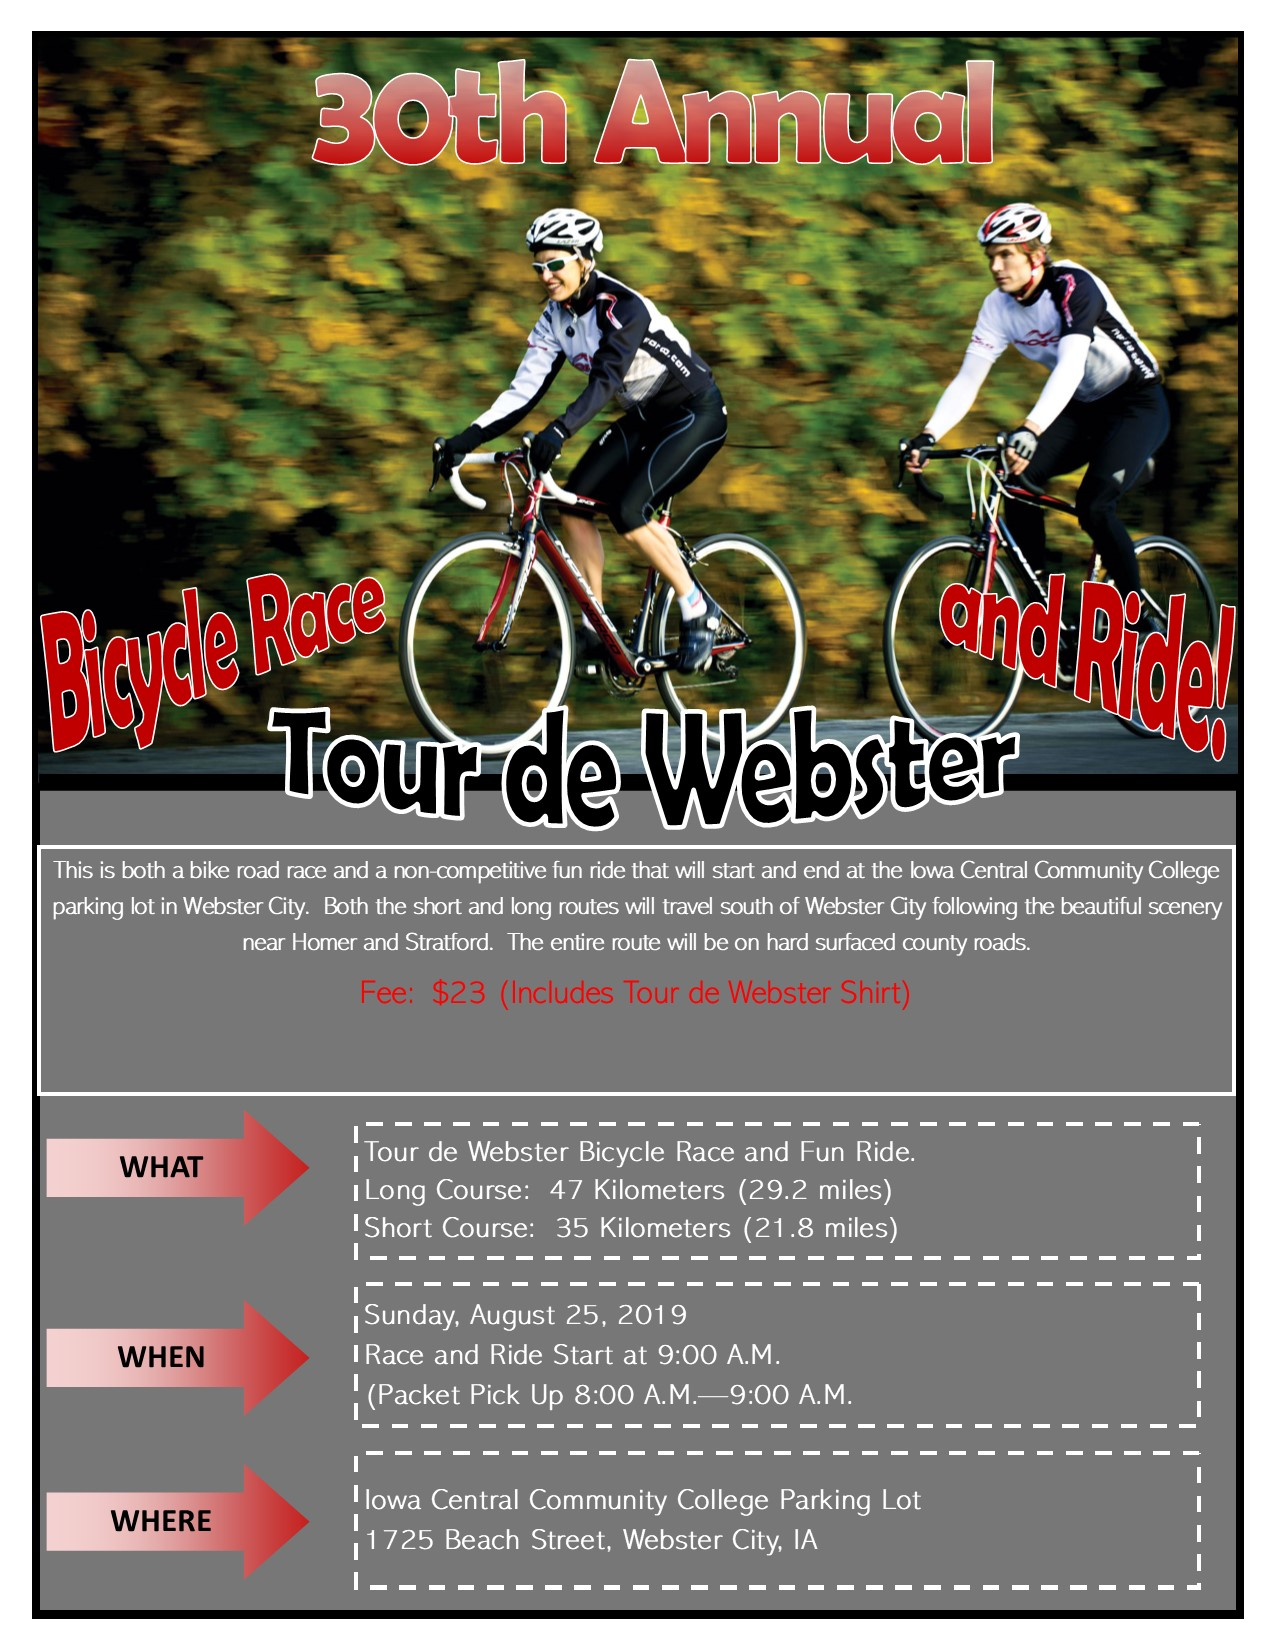 Tour de Webster - Race and Bike Ride @ Iowa Central Community College - Webster City | Webster City | Iowa | United States